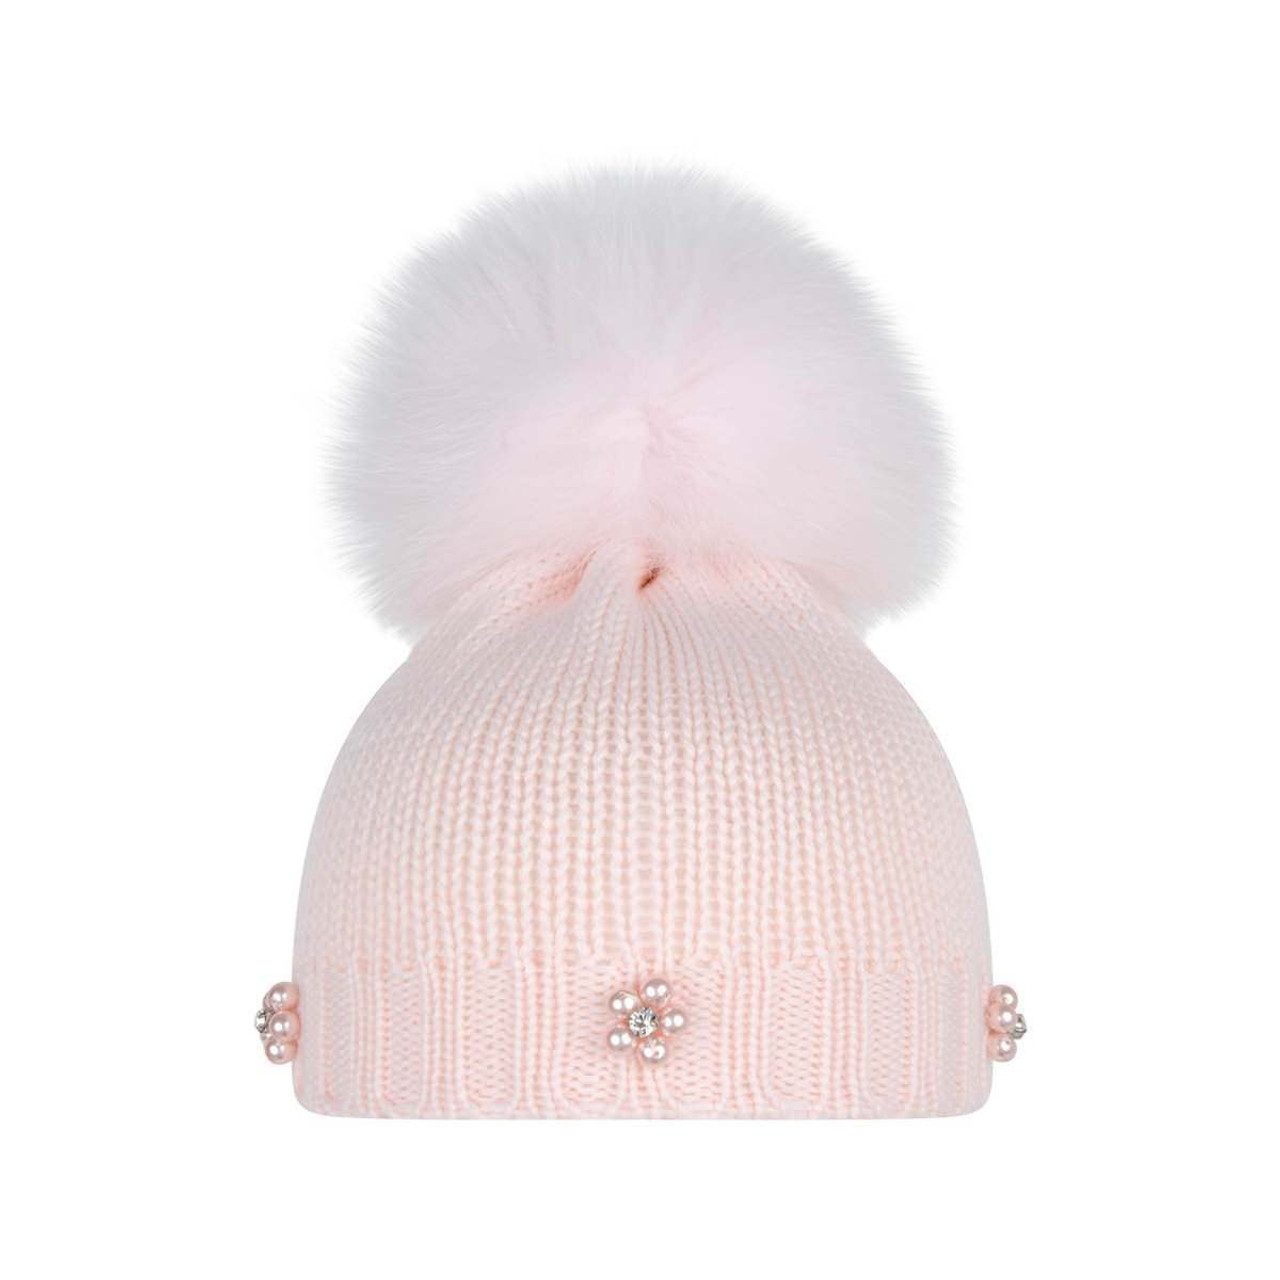 a41a68466 Girls Pink Pom Pom Hat